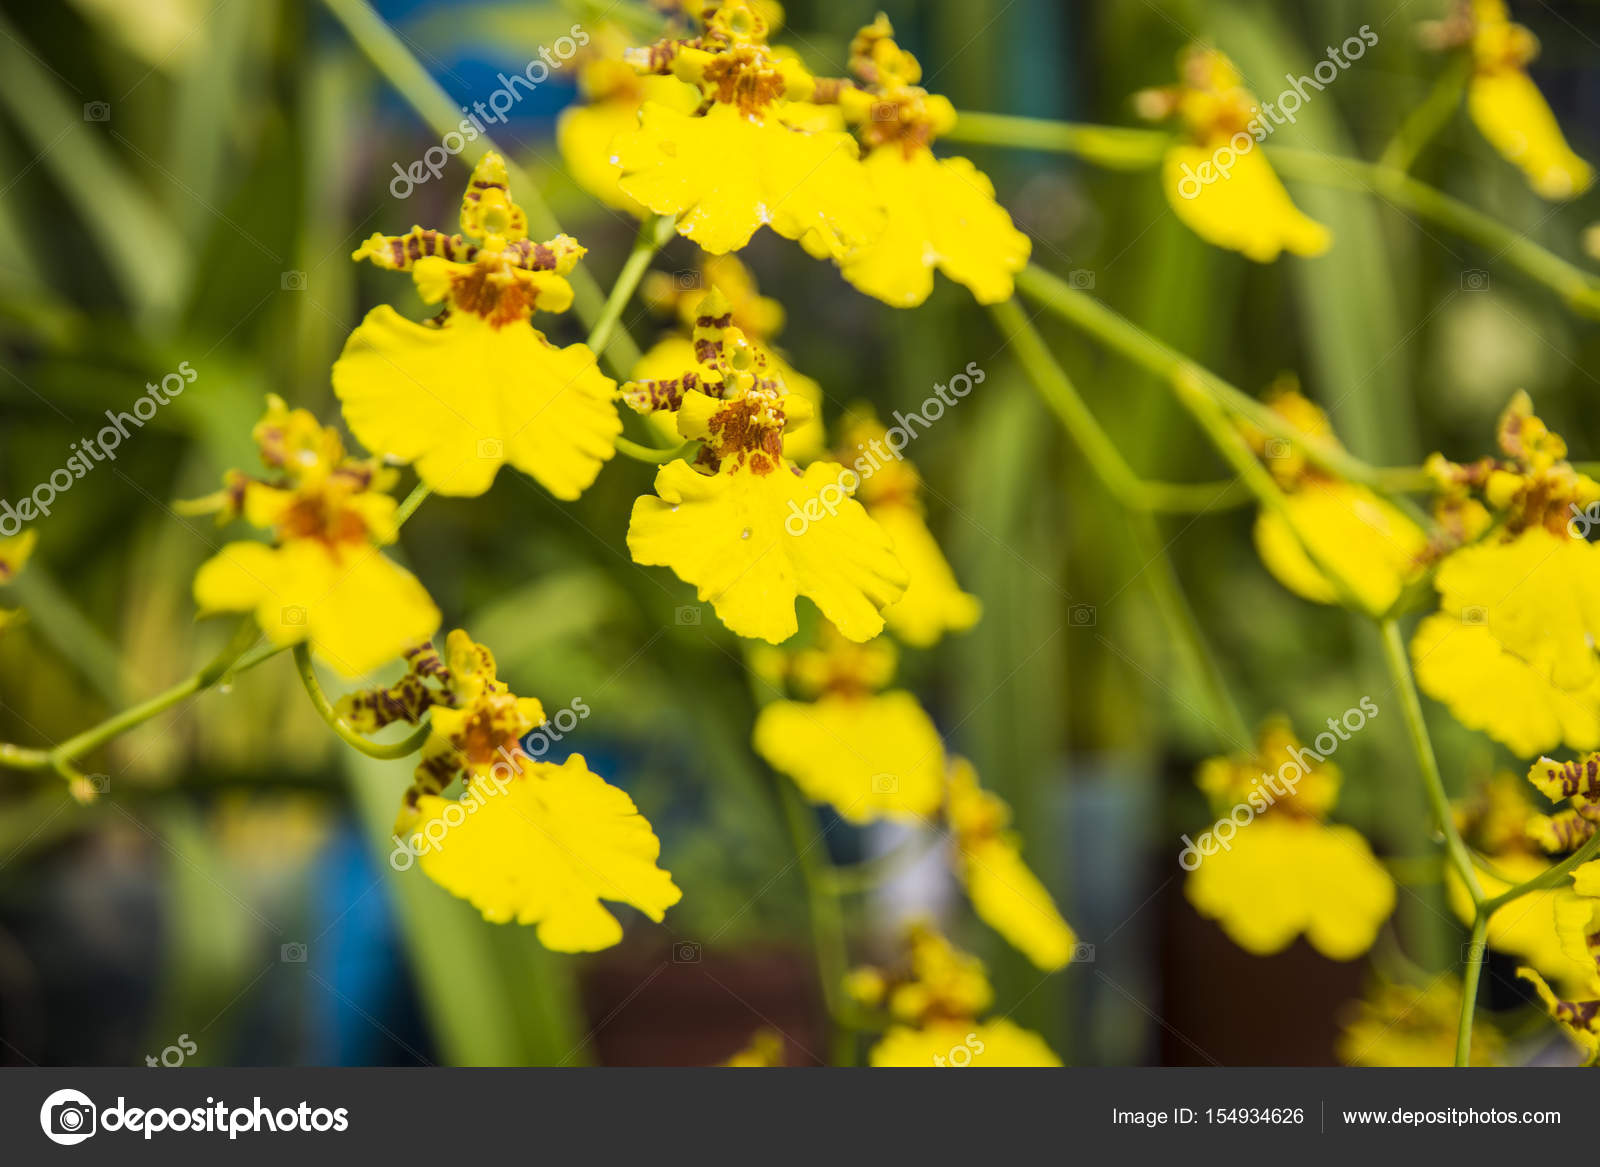 Bright yellow flowers succulent shrub with yellow flowers stock bright yellow flowers shrub with succulent yellow flowers botanical garden photo by juliza03 mightylinksfo